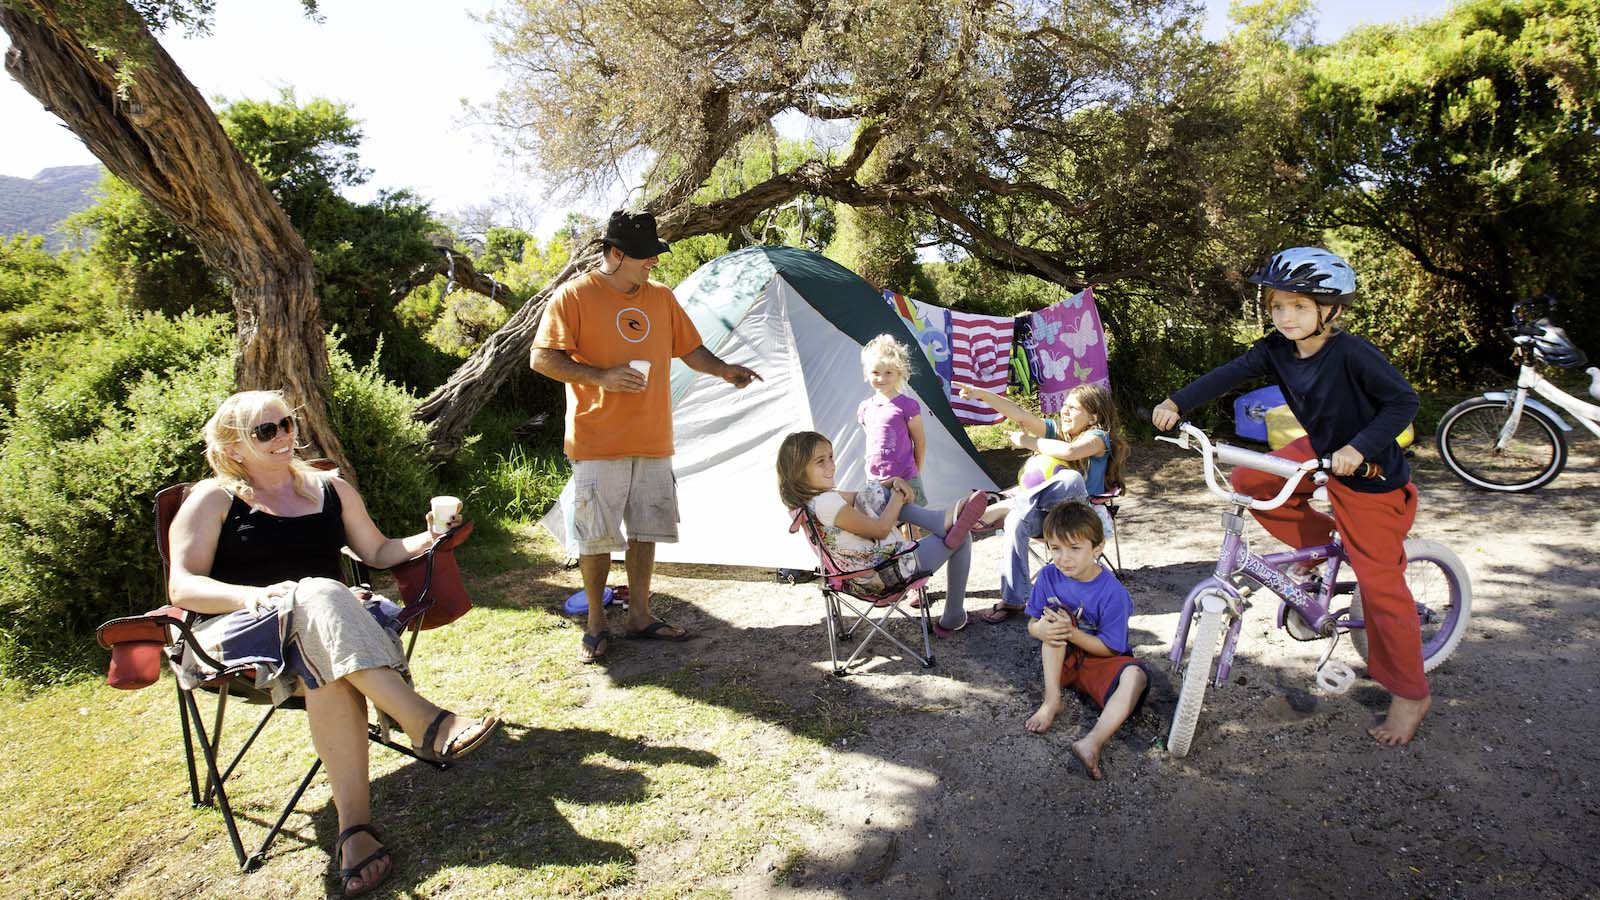 Tidal River Campground, Wilsons Promontory, Gippsland, Victoria, Australia